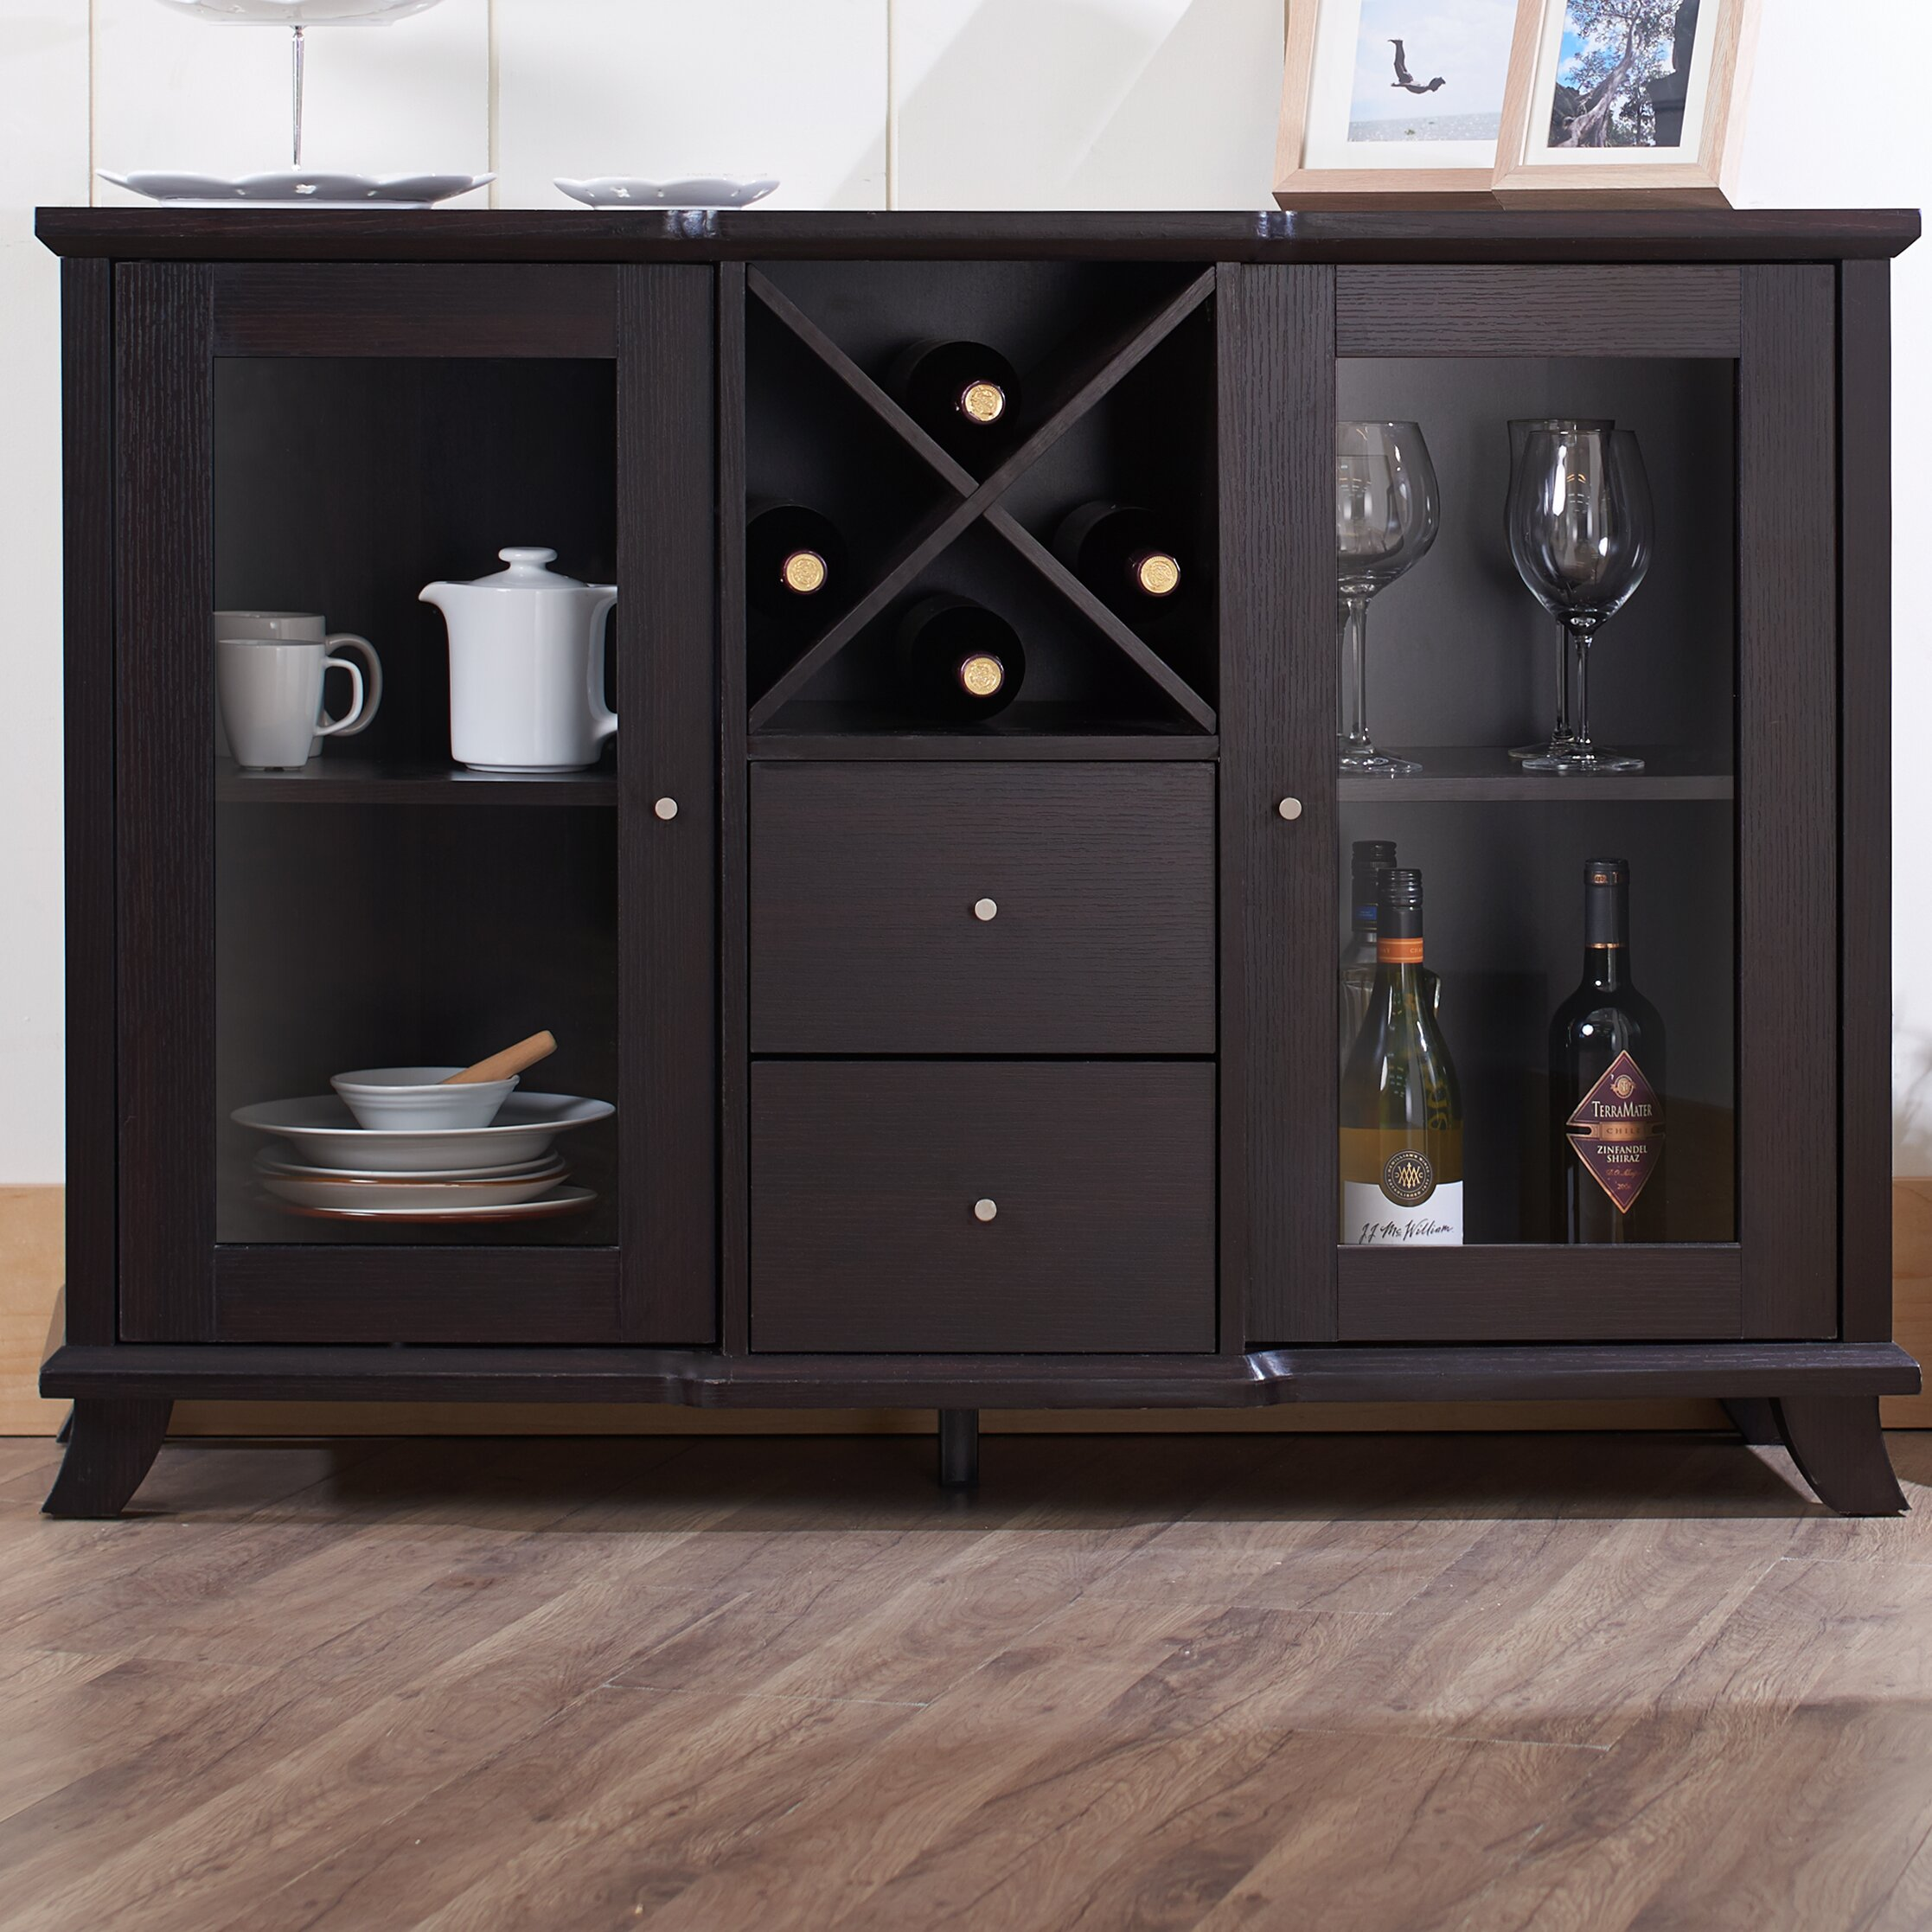 Hokku designs venetta dining buffet cabinet reviews for Lounge cabinets